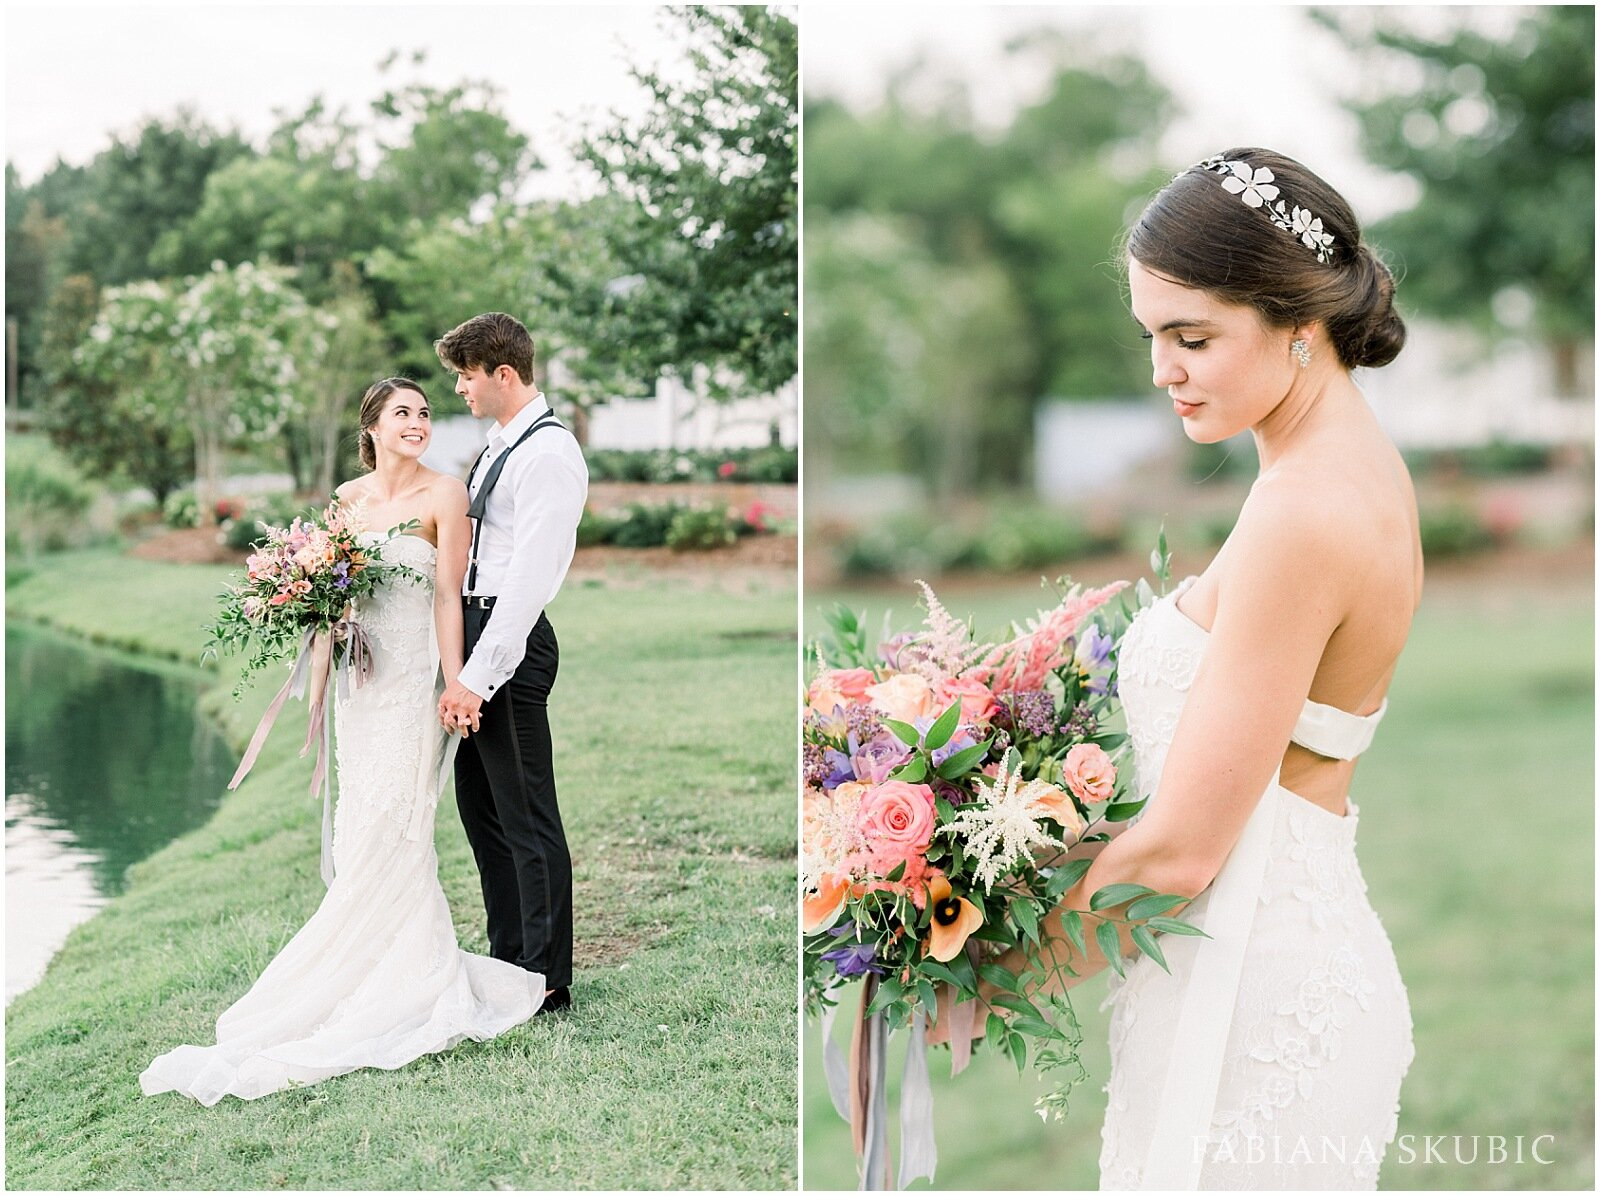 Raleigh-Wedding-Photographer-Fabiana-Skubic (83).jpg